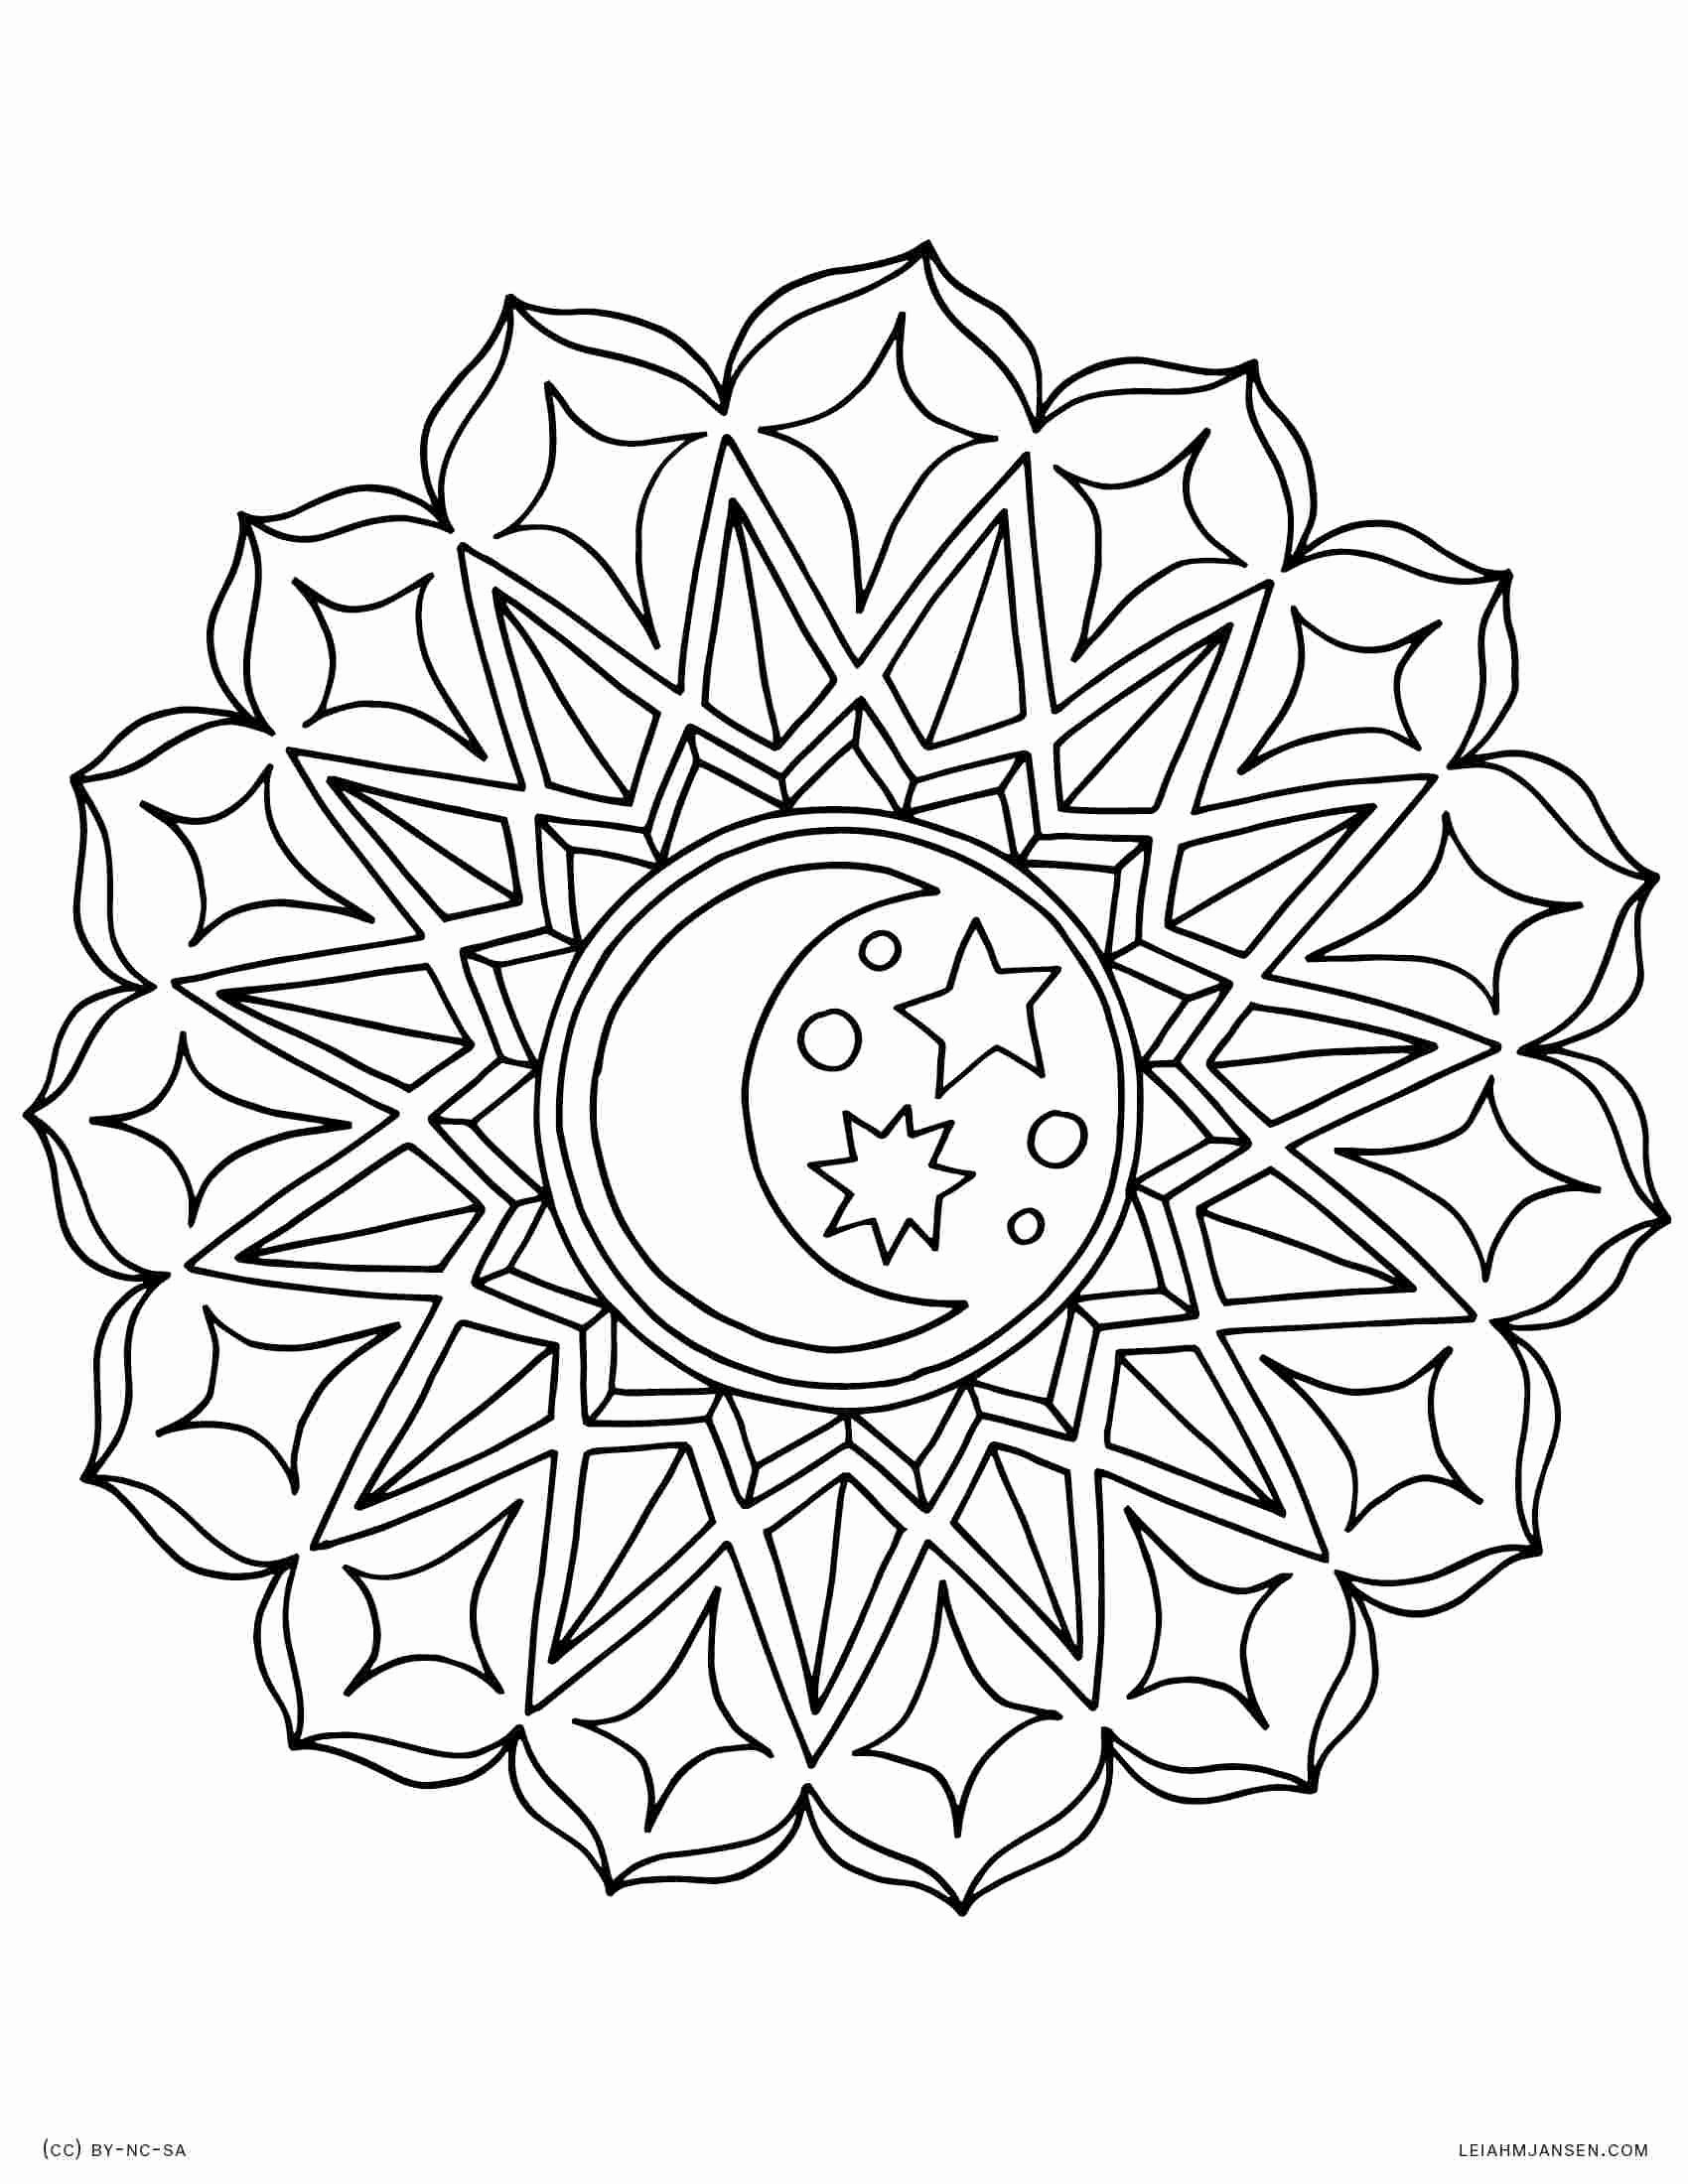 Printable Mandala Coloring Pages For Kids In 2020 Mandala Coloring Pages Mandala Coloring Books Coloring Pages